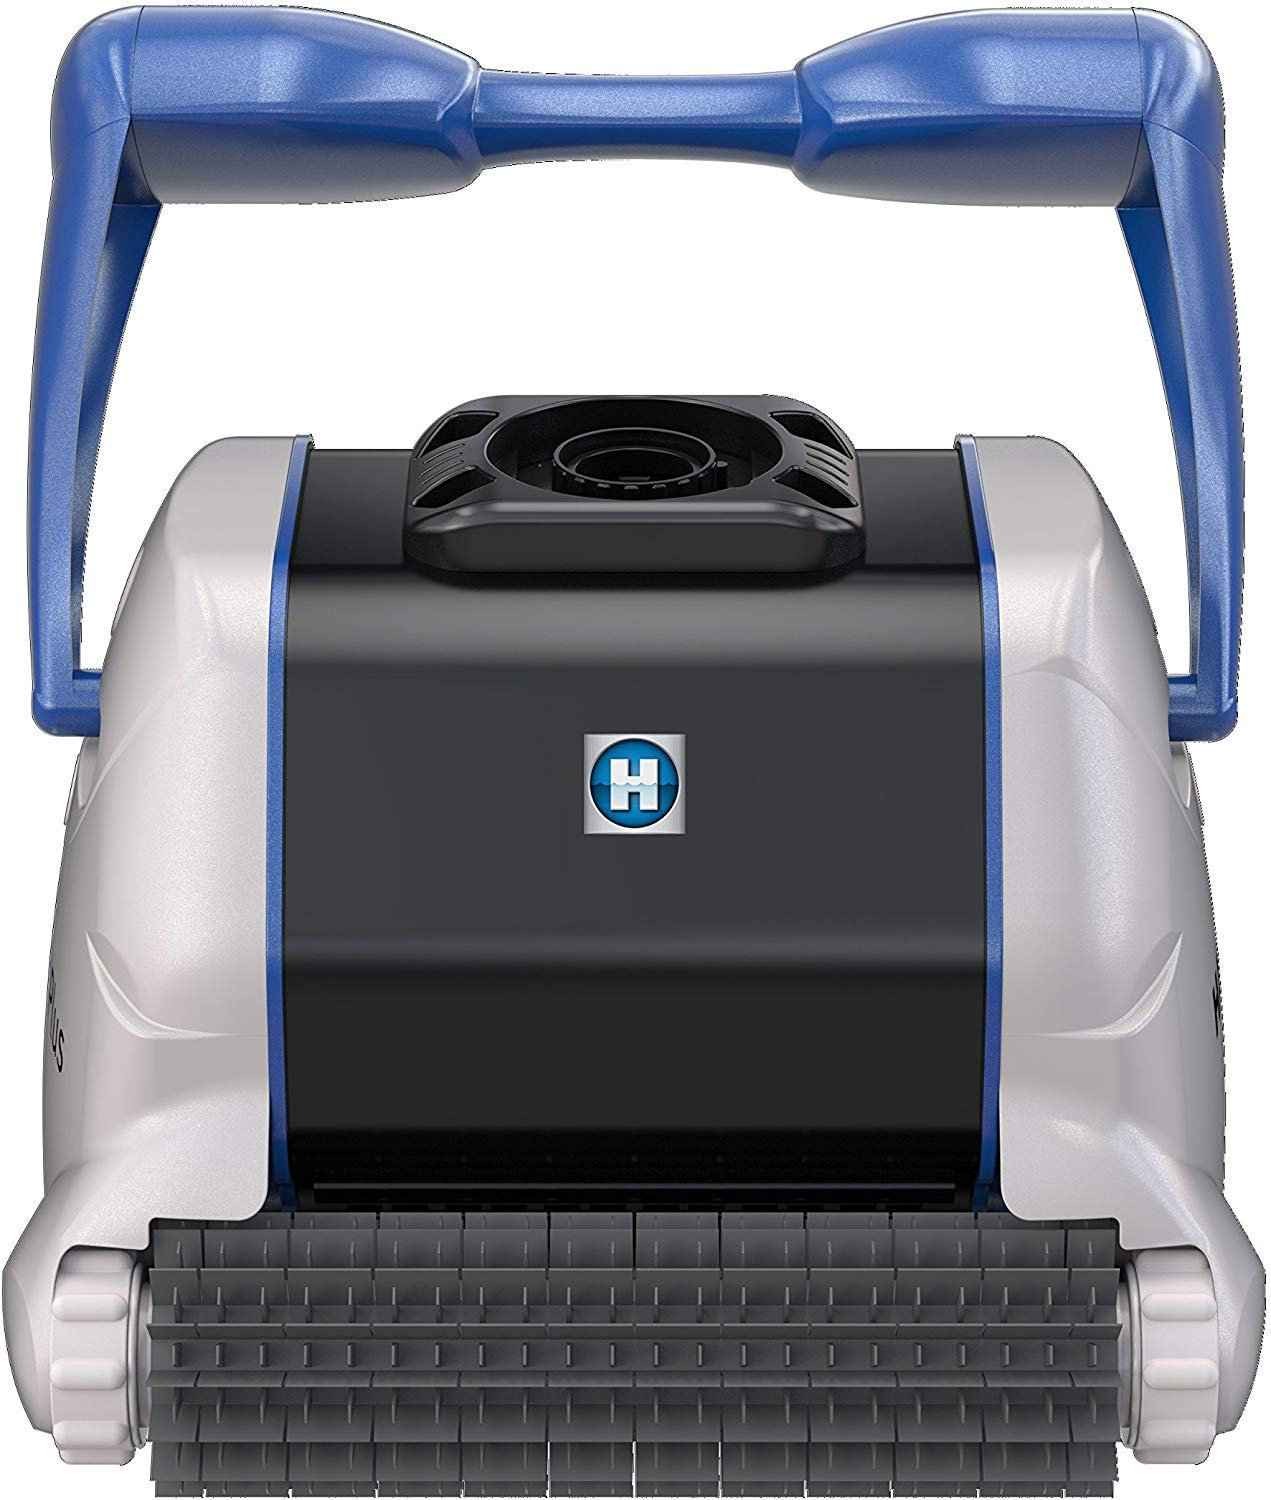 Hayward W3RC9990CUB TigerShark Robotic Pool Vacuum - Best Robotic Pool Cleaners